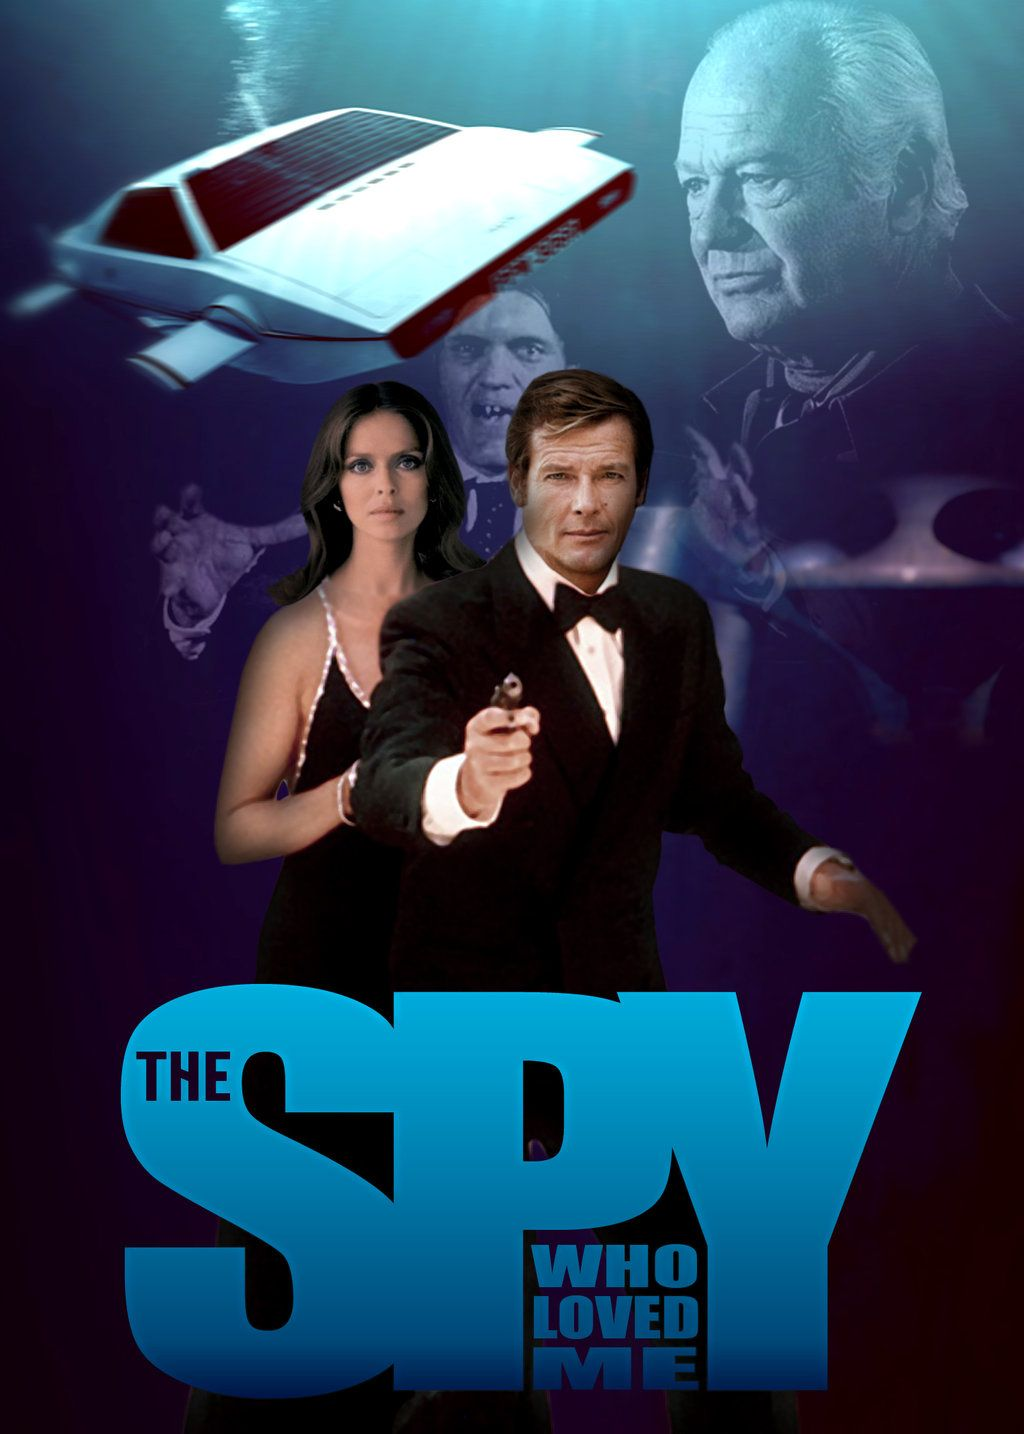 The Spy Who Loved Me (1977) Full Movie 720p Download With Bsub